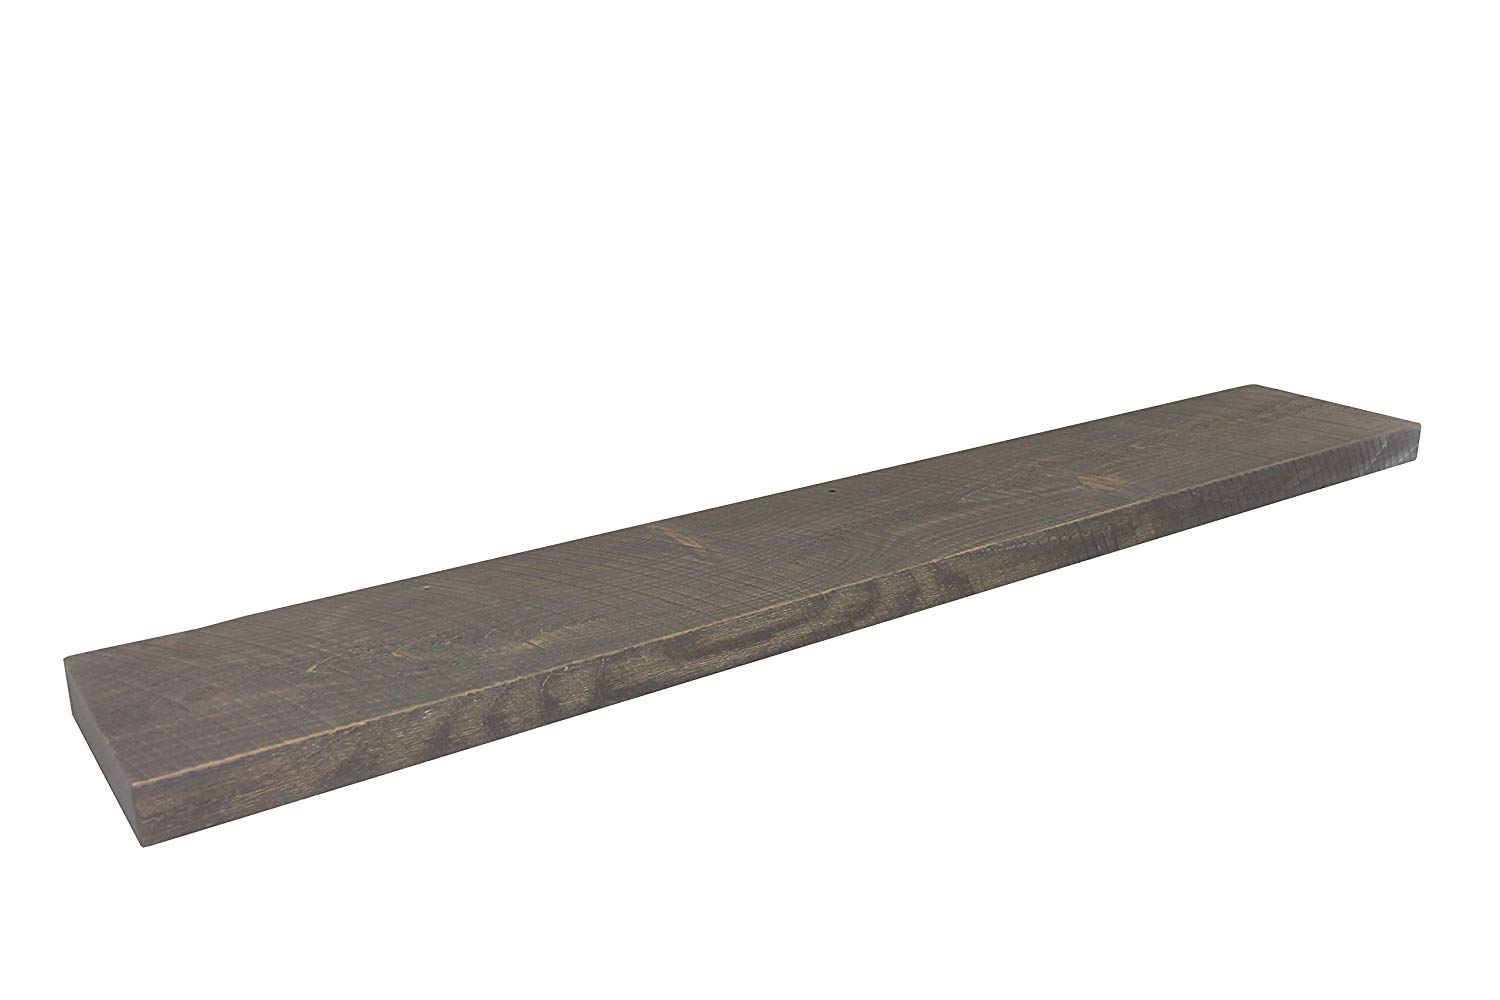 joel antiques floating shelf rustic shelves gray for heavy books weathered wood duty dishes home kitchen moveable island small bathroom solutions ikea shoe rack and coat stand